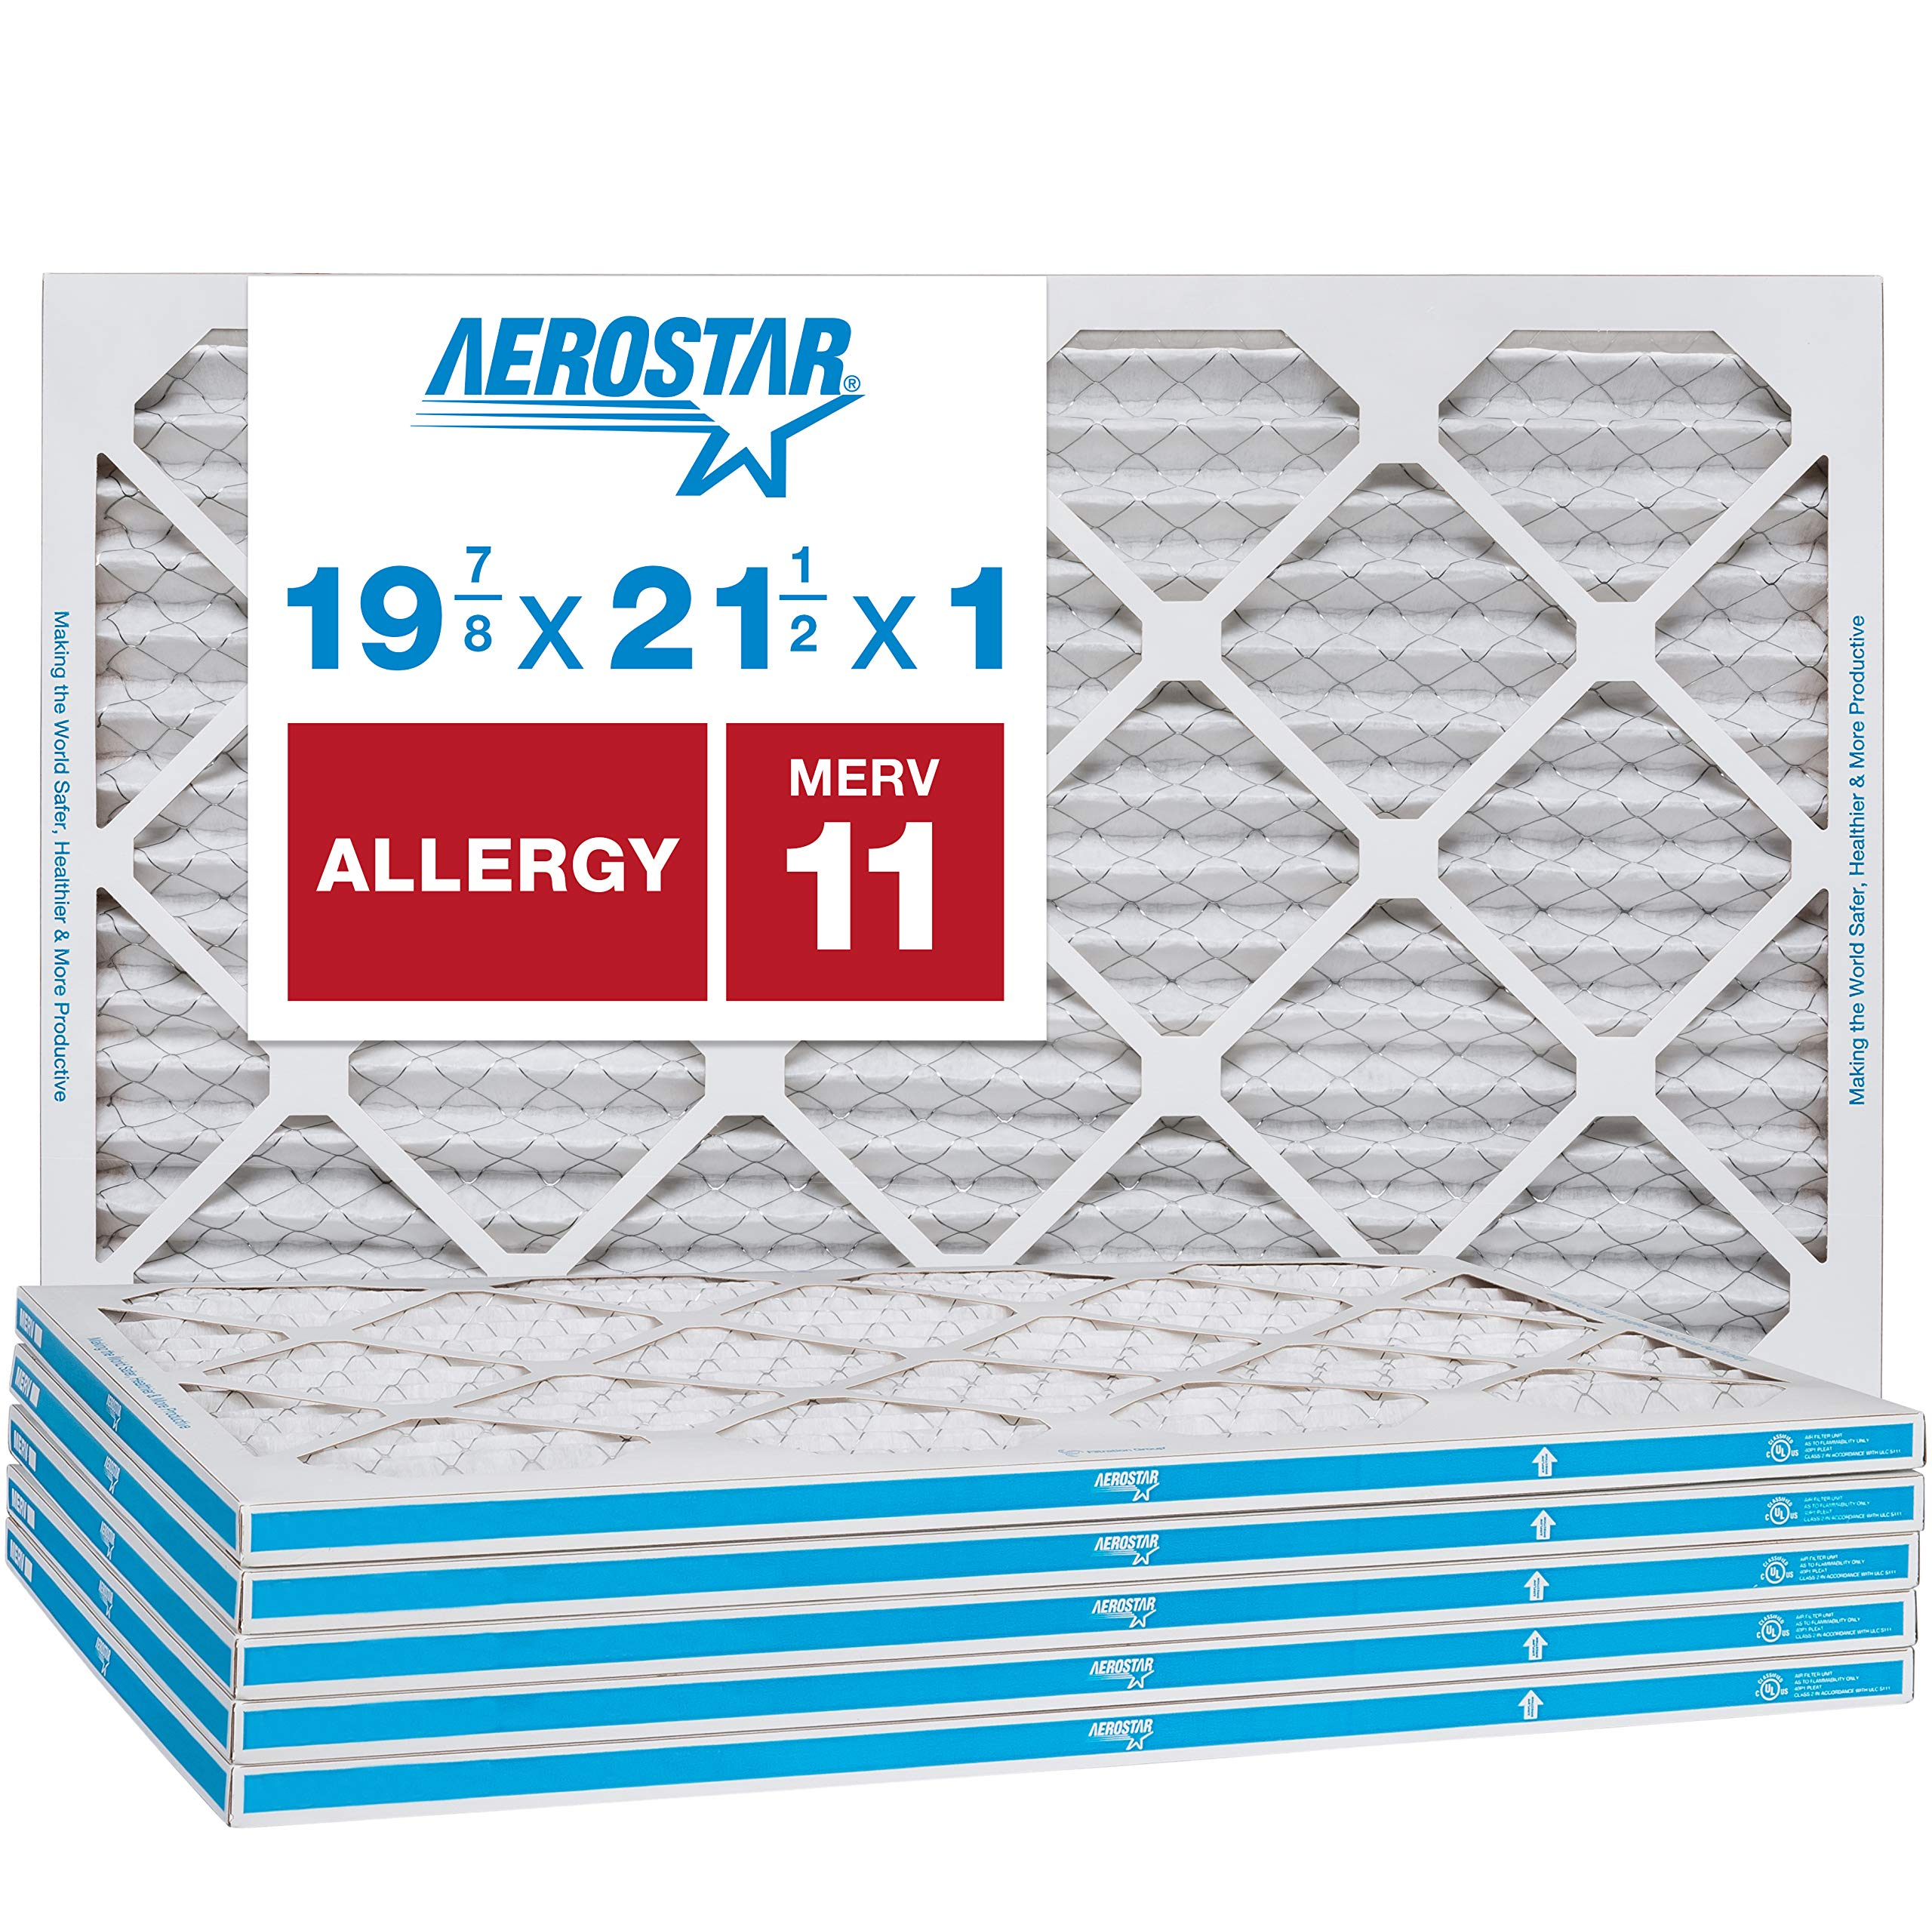 """Aerostar Allergen & Pet Dander 19 7/8 x 21 1/2x1 MERV 11 Pleated Air Filter, Made in the USA, (Actual Size: 19 7/8""""x21 1/2""""x3/4""""), 6-Pack"""